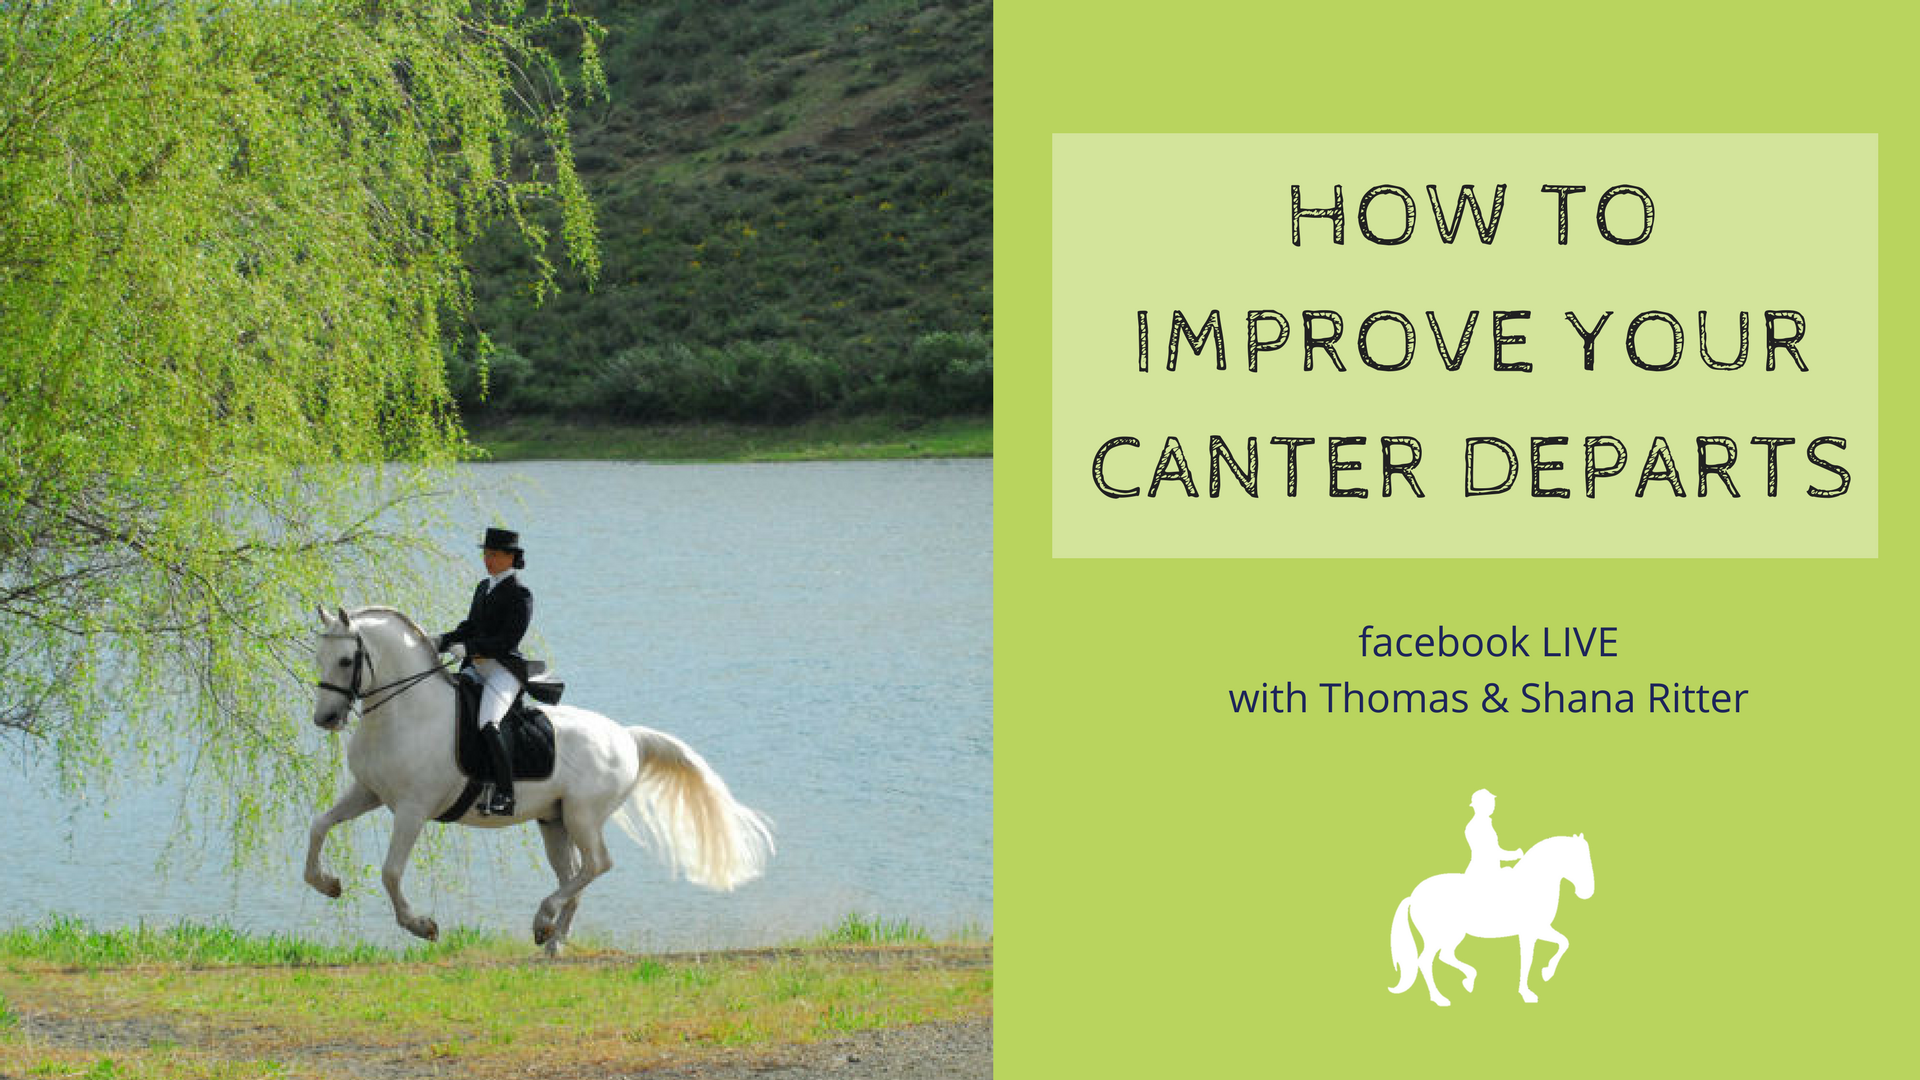 How to improve your canter departs.png